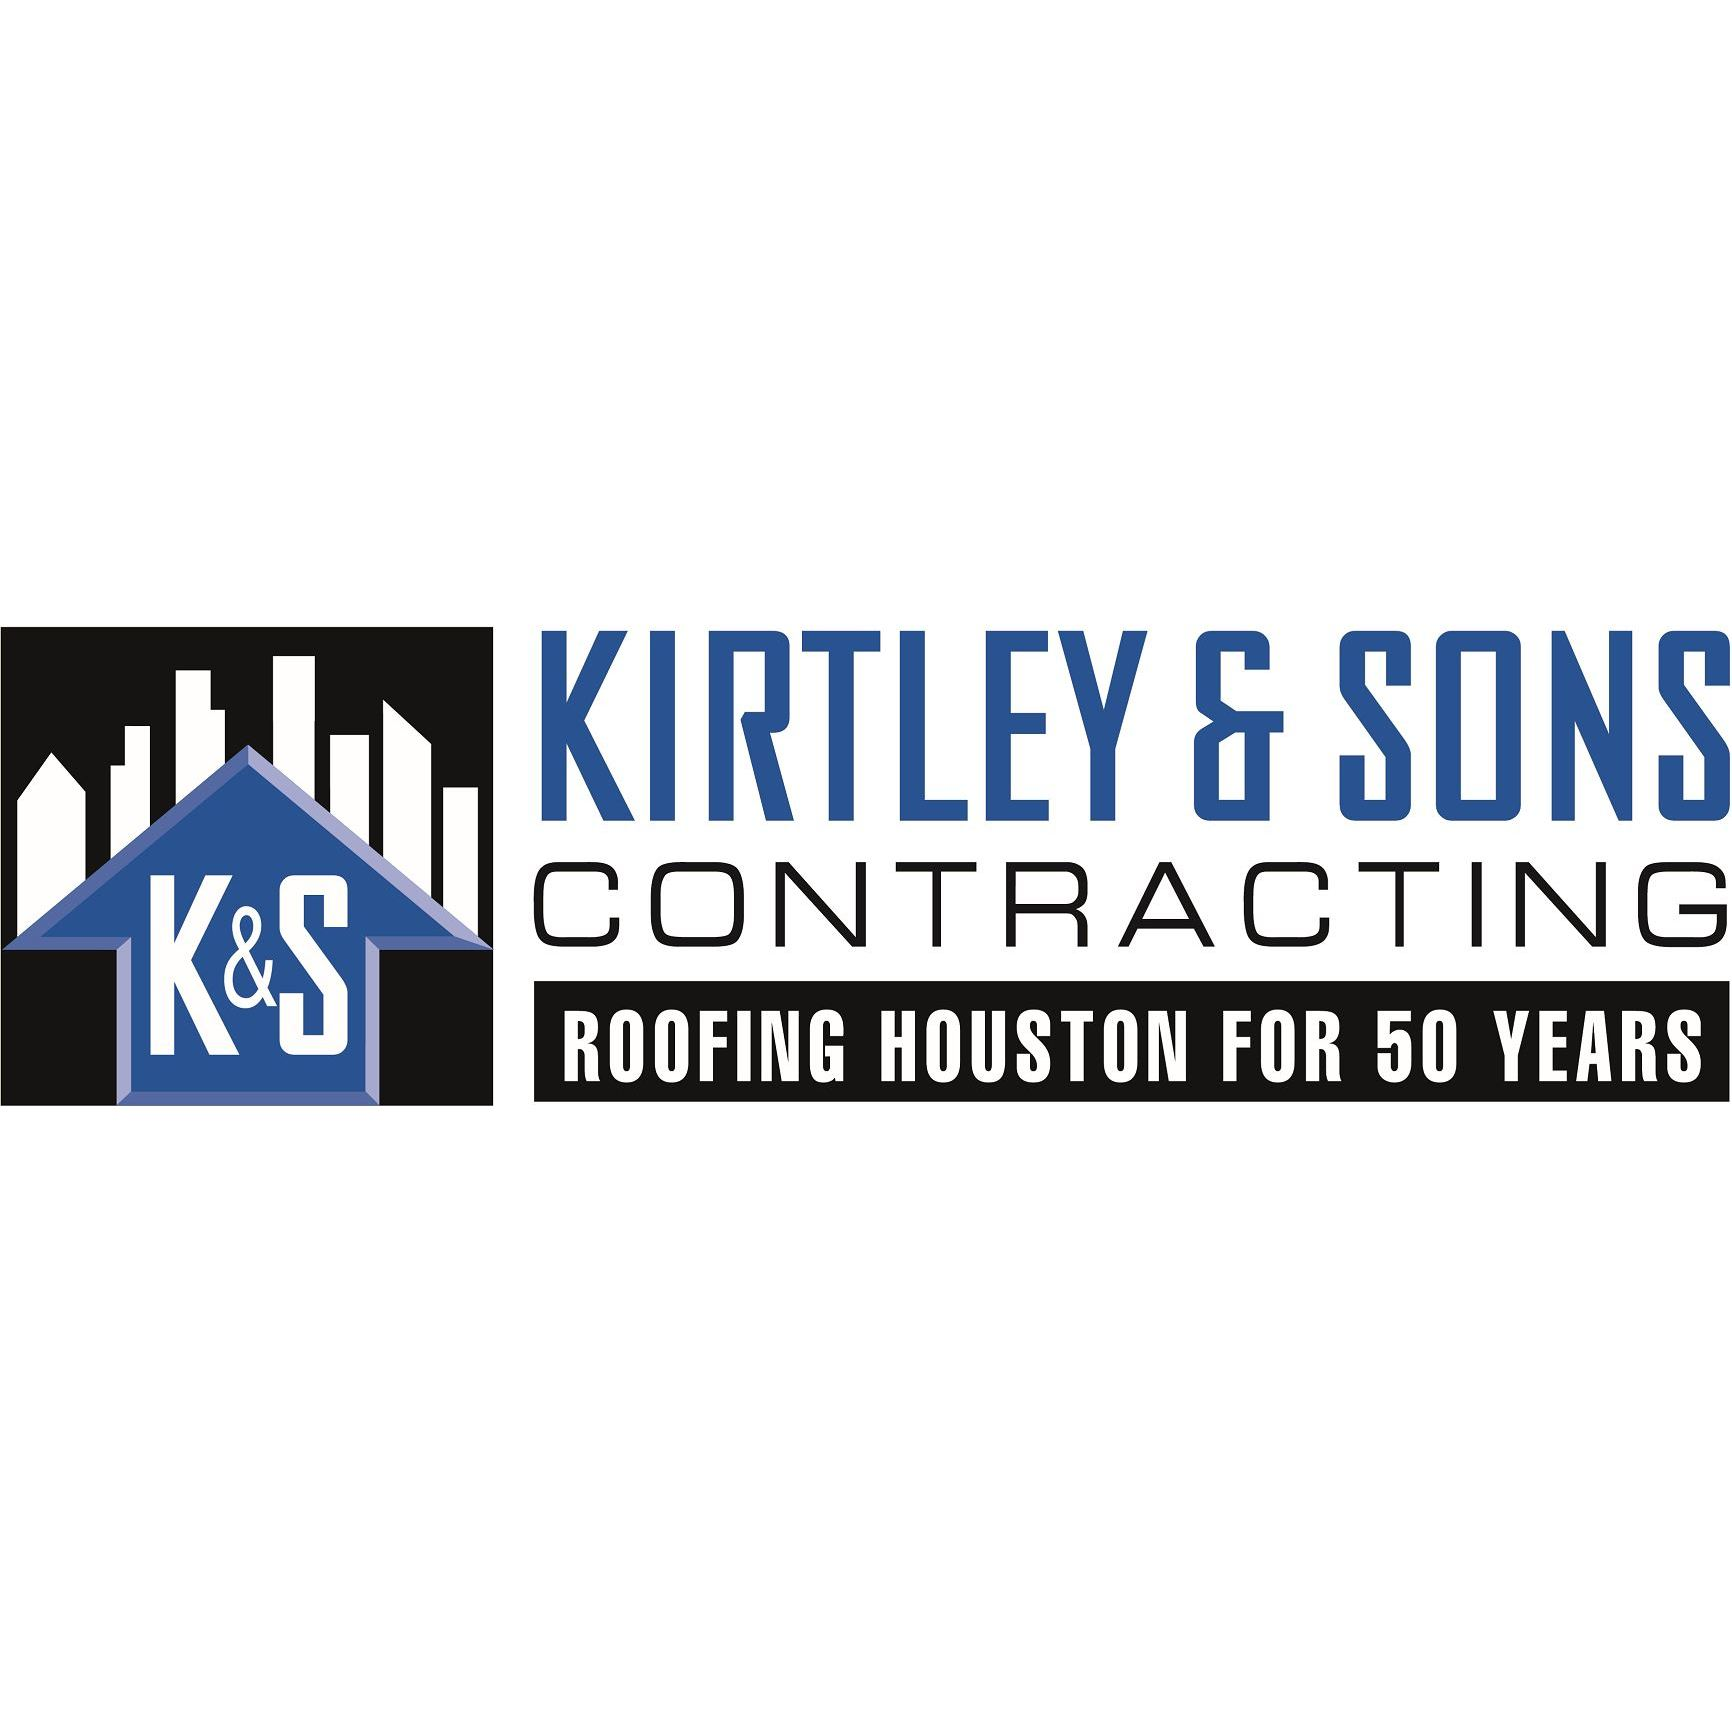 Kirtley & Sons Roofing